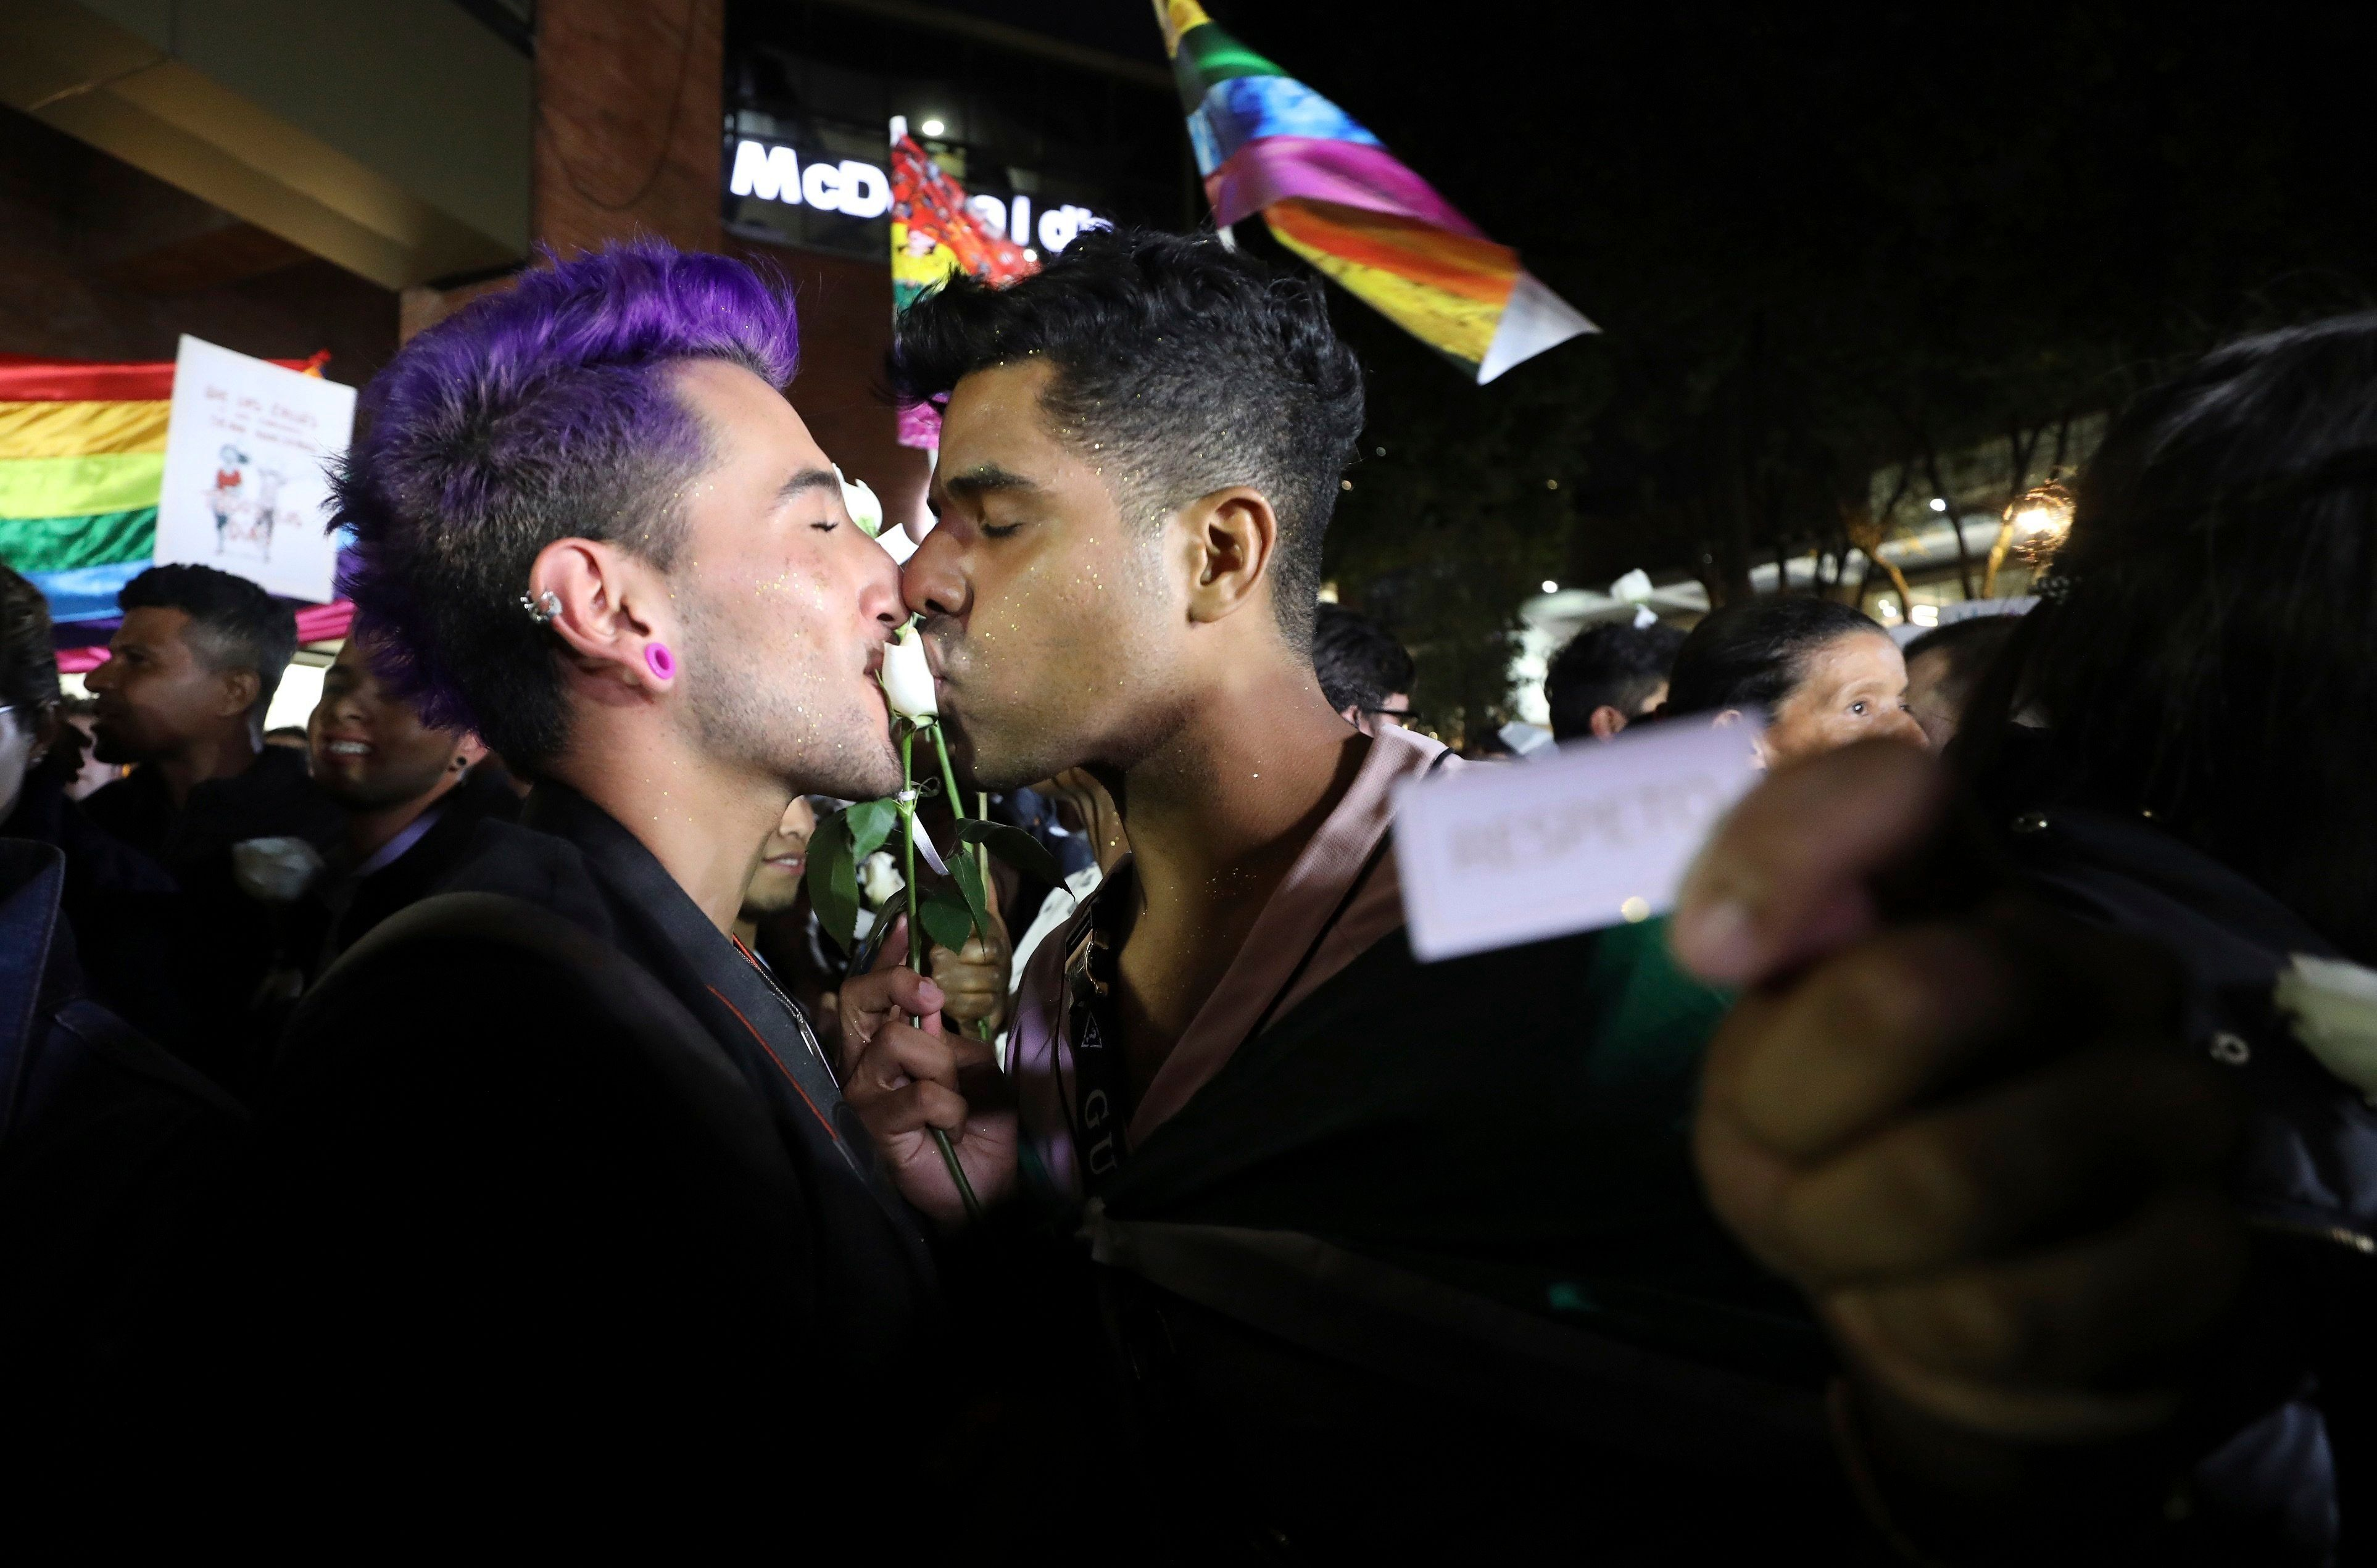 """A same sex couple kiss a rose during a """"Kiss-a-thon,"""" as a form of protest for LGBT rights in Bogota, Colombia, Wednesday, April 17, 2019. The event was held at the same Andino shopping mall where days ago two gay men were harassed by a customer who lured police into fining them for """"exhibitionism."""" (AP Photo/Fernando Vergara)"""